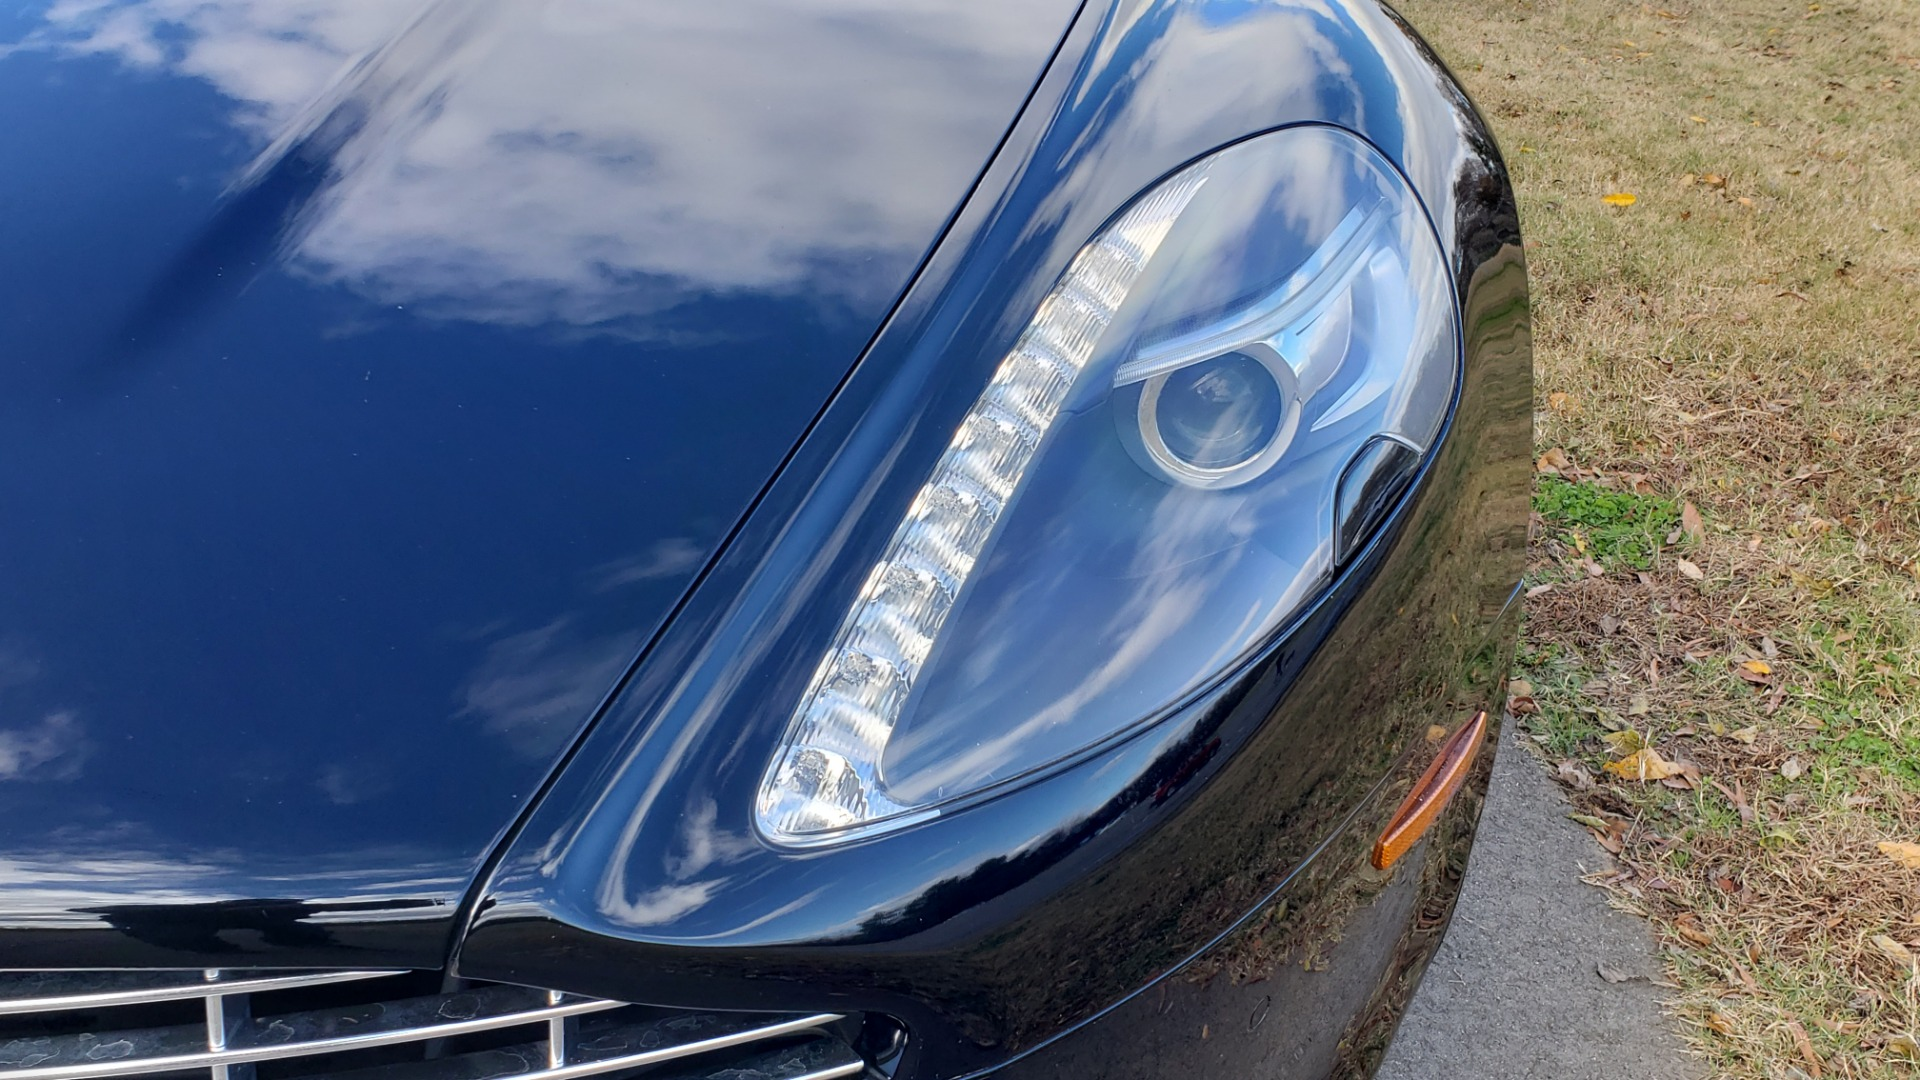 Used 2012 Aston Martin RAPIDE LUXURY 6.0L V12 / NAV / B&O SND / ENTERTAINMENT / REARVIEW for sale Sold at Formula Imports in Charlotte NC 28227 12